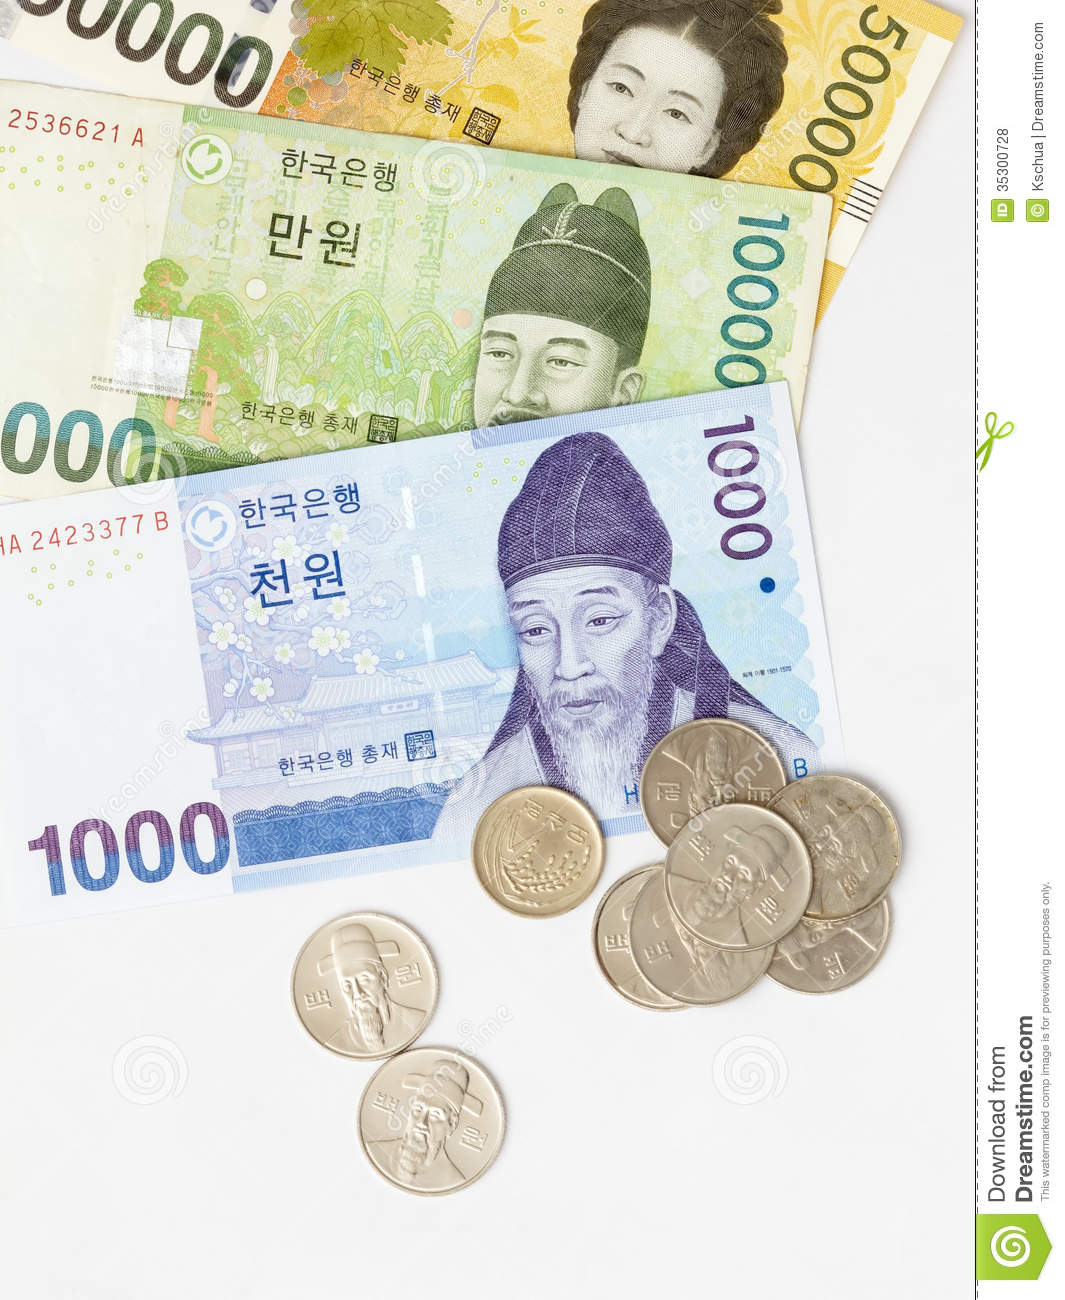 Korean notes